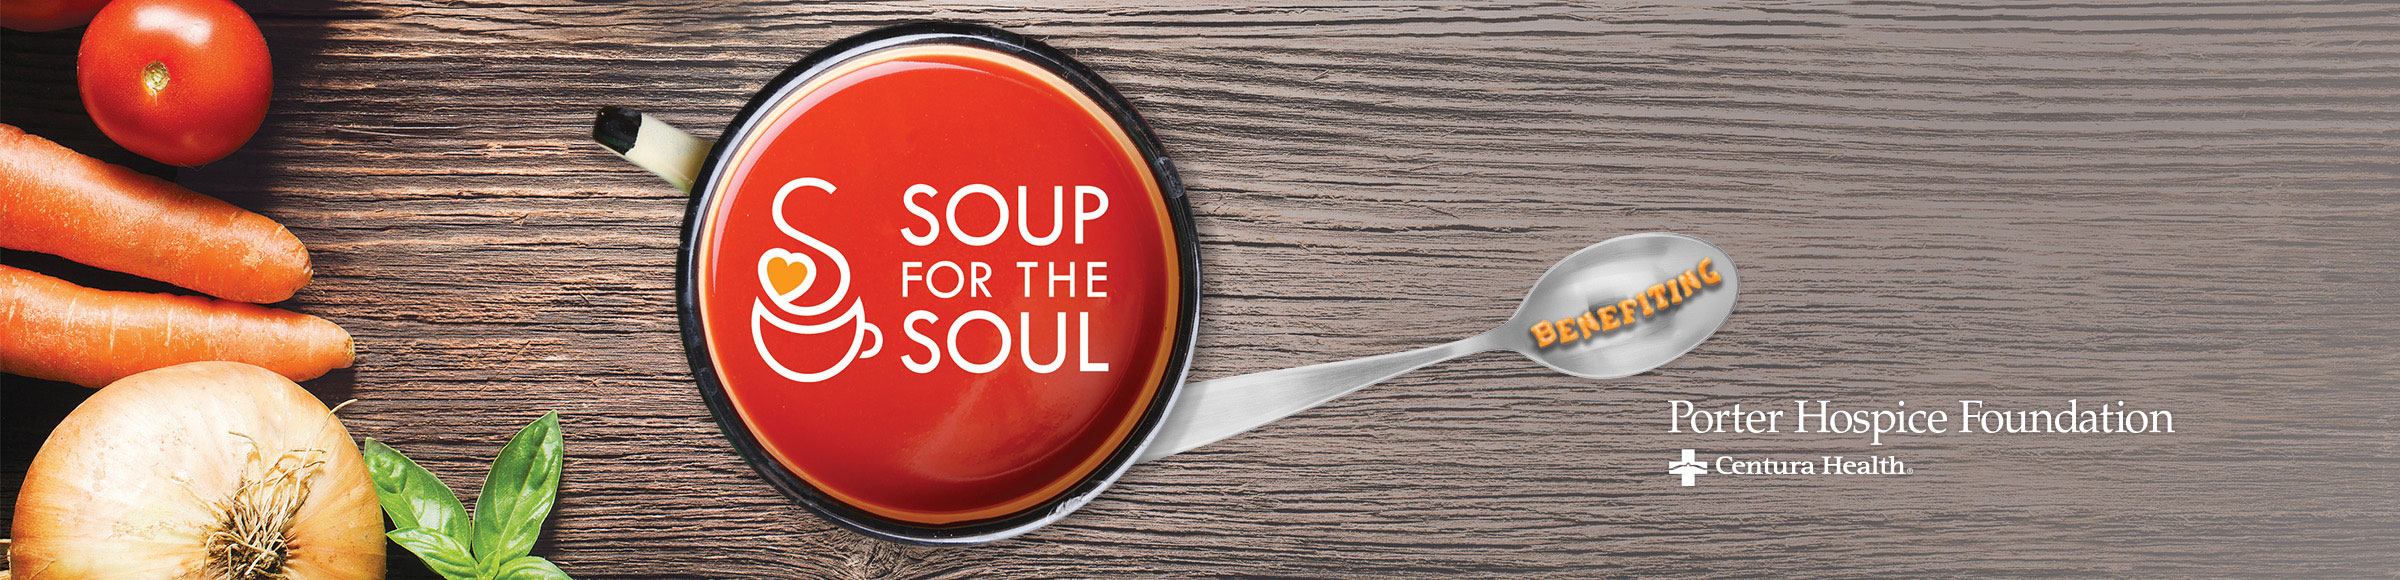 2018 Soup for the Soul